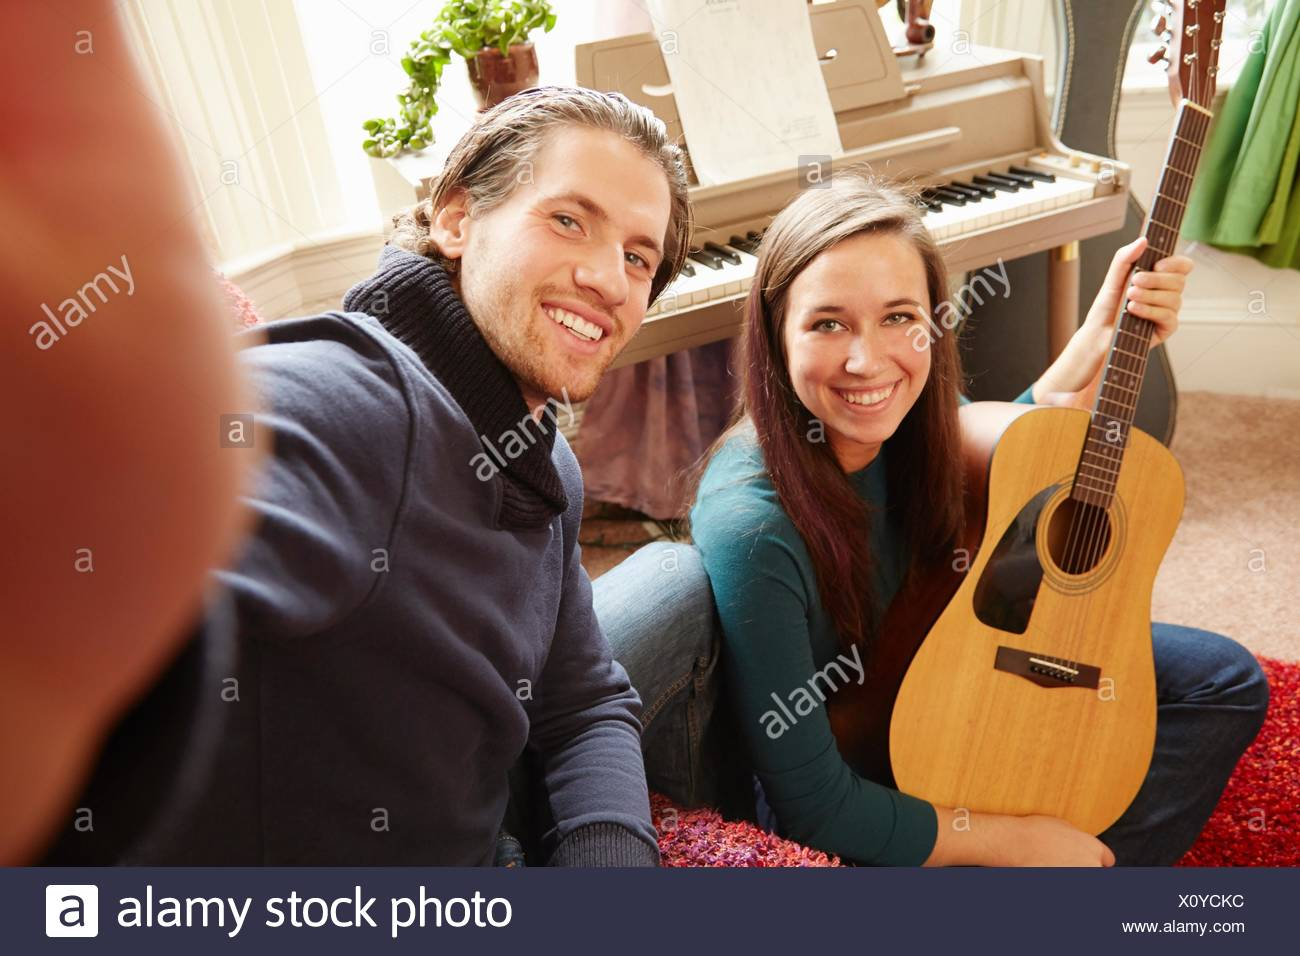 Young man taking selfie with guitarist girlfriend - Stock Image